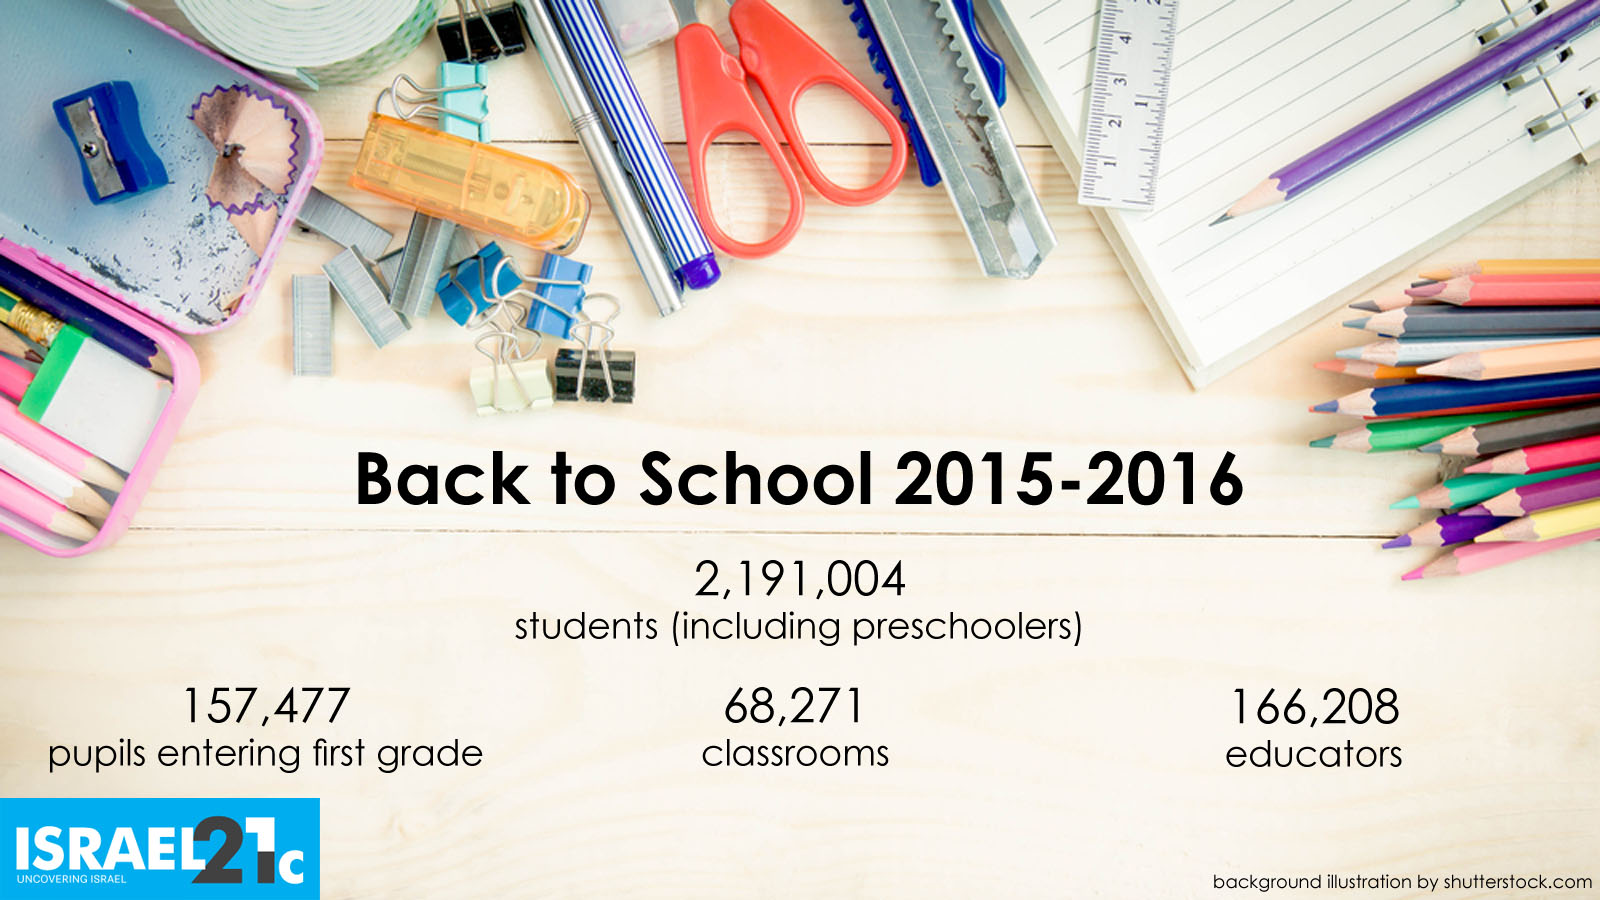 Back to School figures by ISRAEL21c